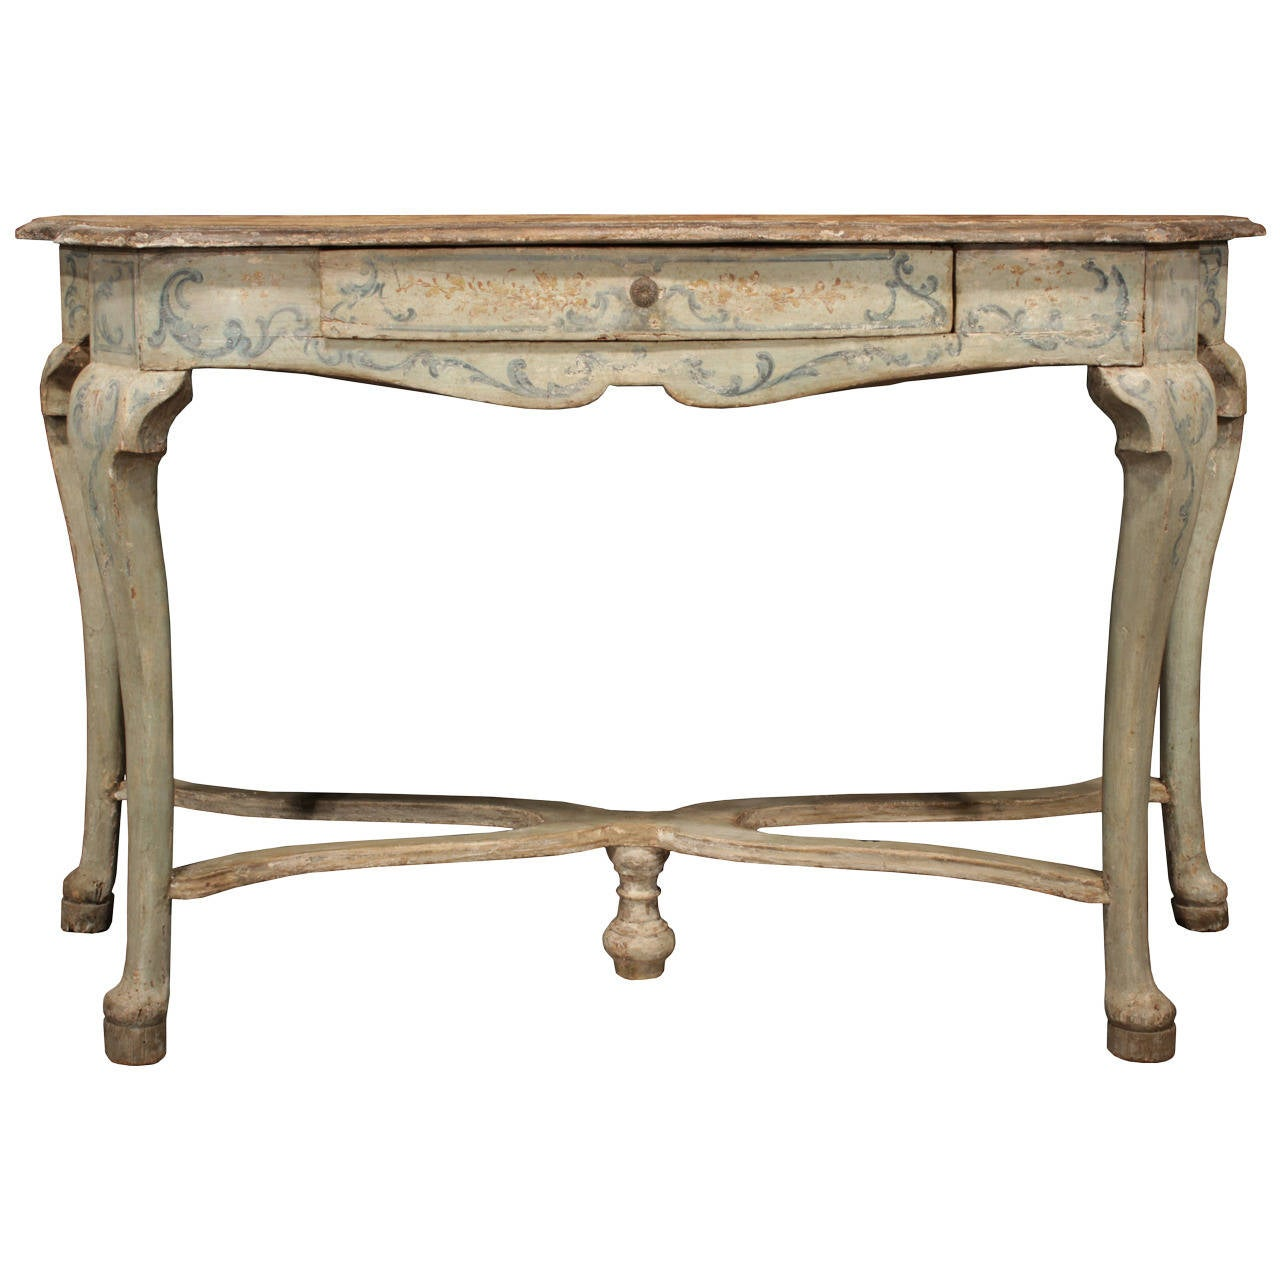 italian early 18th century louis xv period patinated console table for sale at 1stdibs. Black Bedroom Furniture Sets. Home Design Ideas